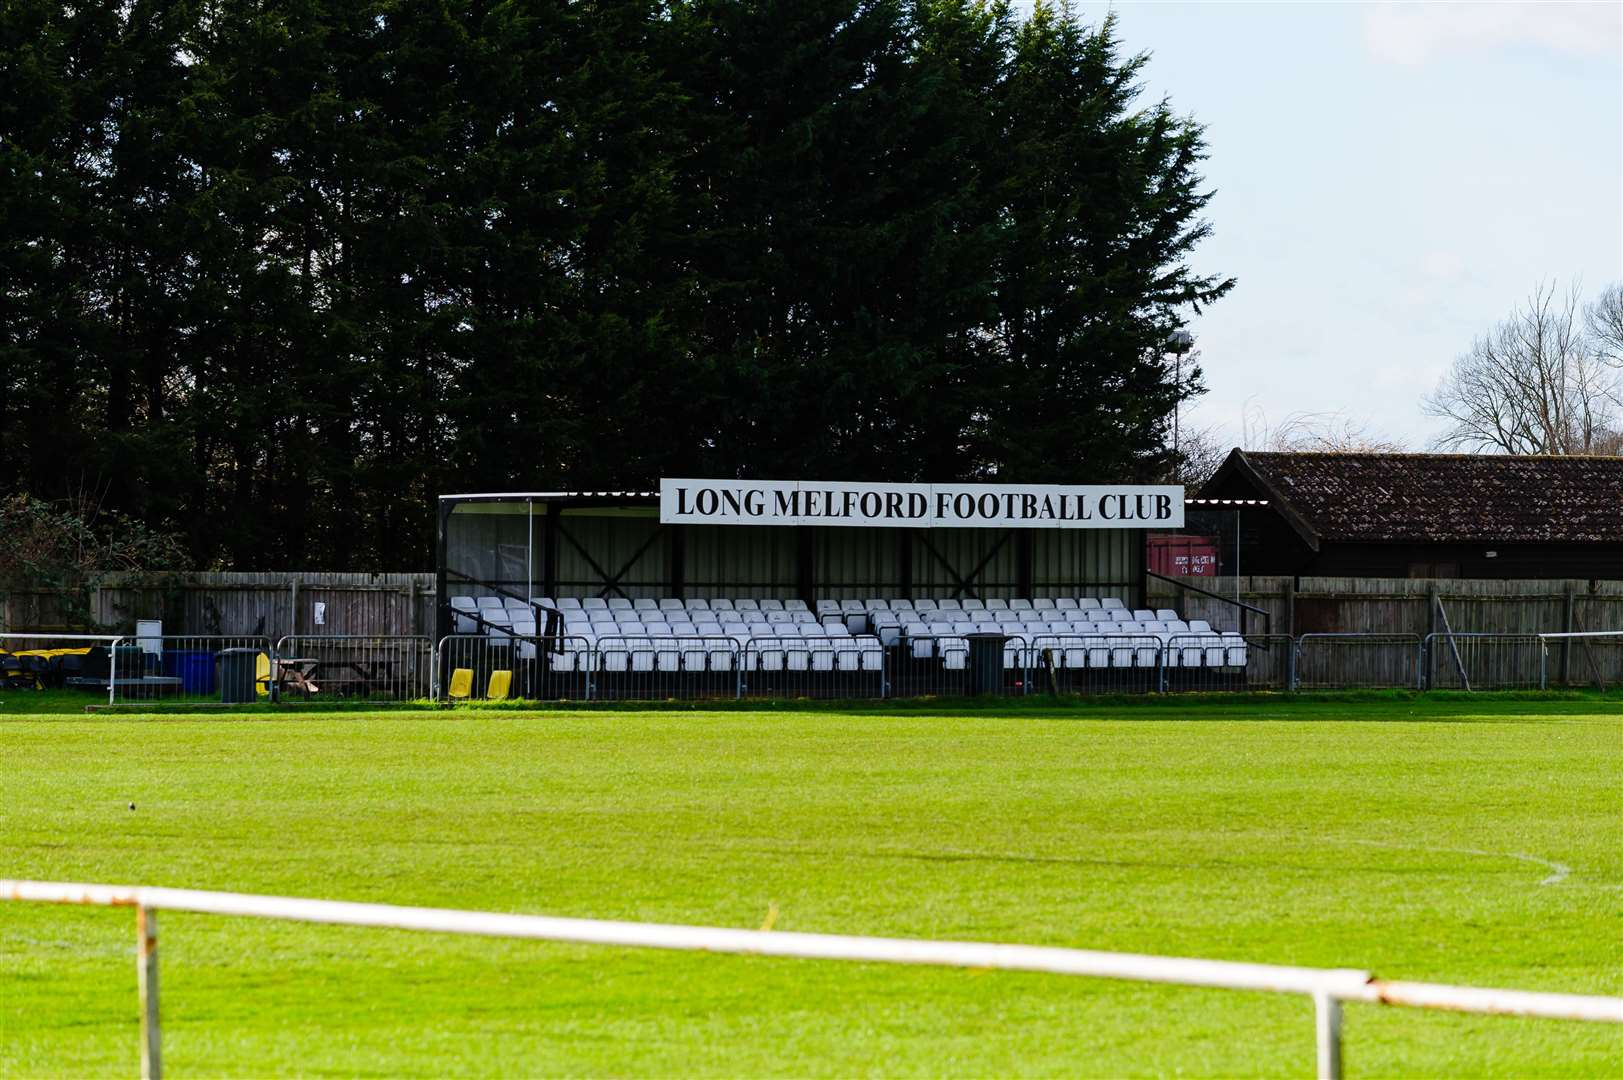 11/02/2020, Long Melford, UK. ..Long Melford Football Club grounds and club house...Photo by Mark Bullimore. (28959350)